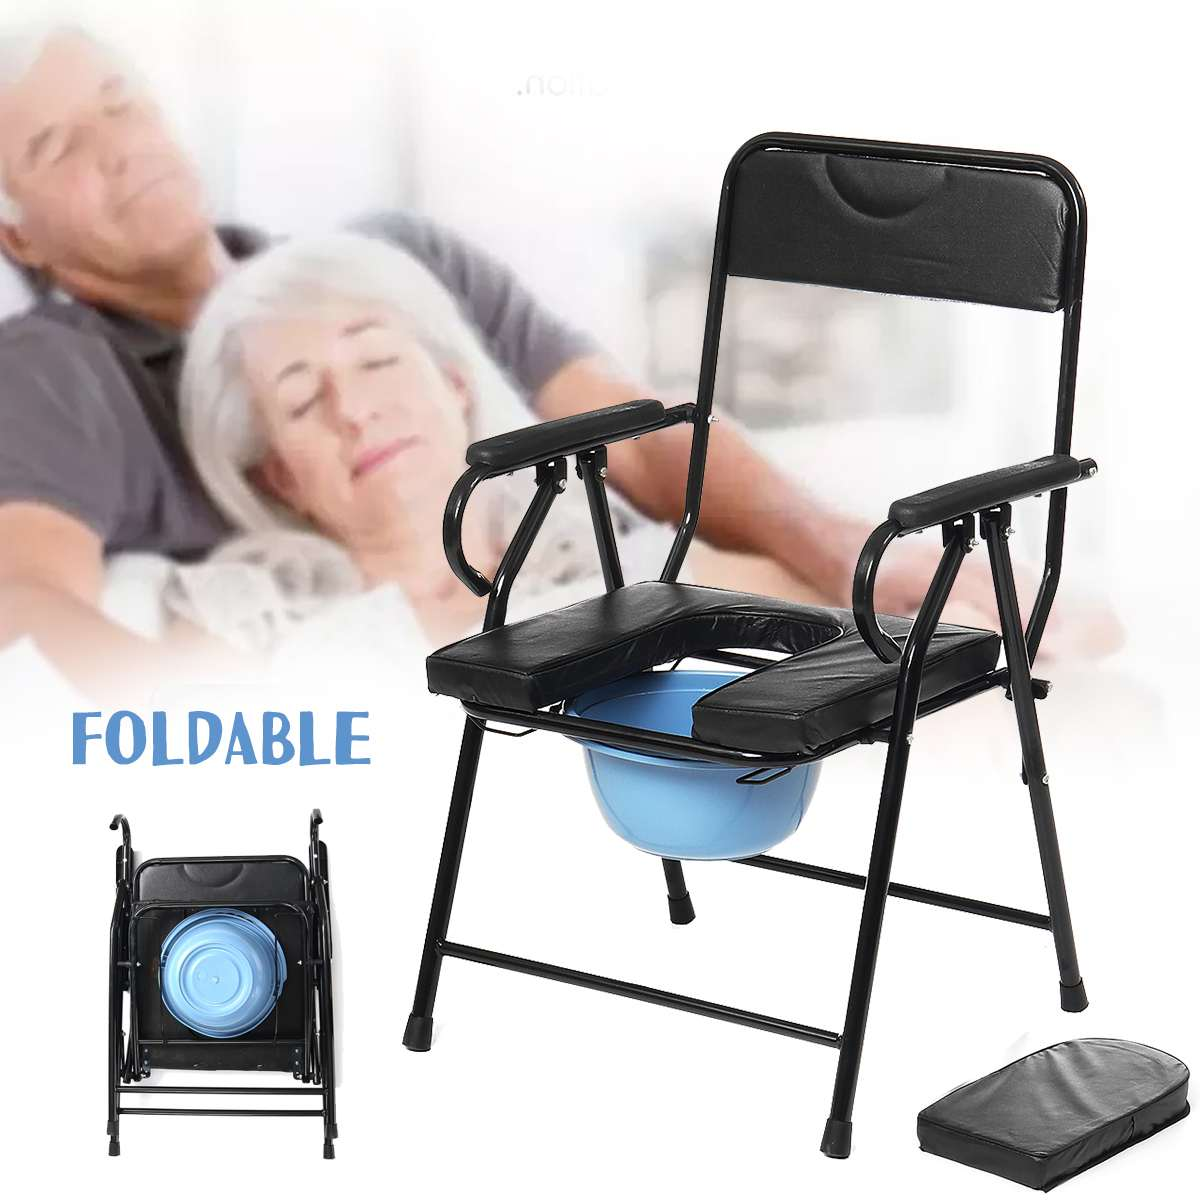 Pregnant Women Disabled Seniors Toilet Chair Elderly Stool Toilet Folding Toilet Chair